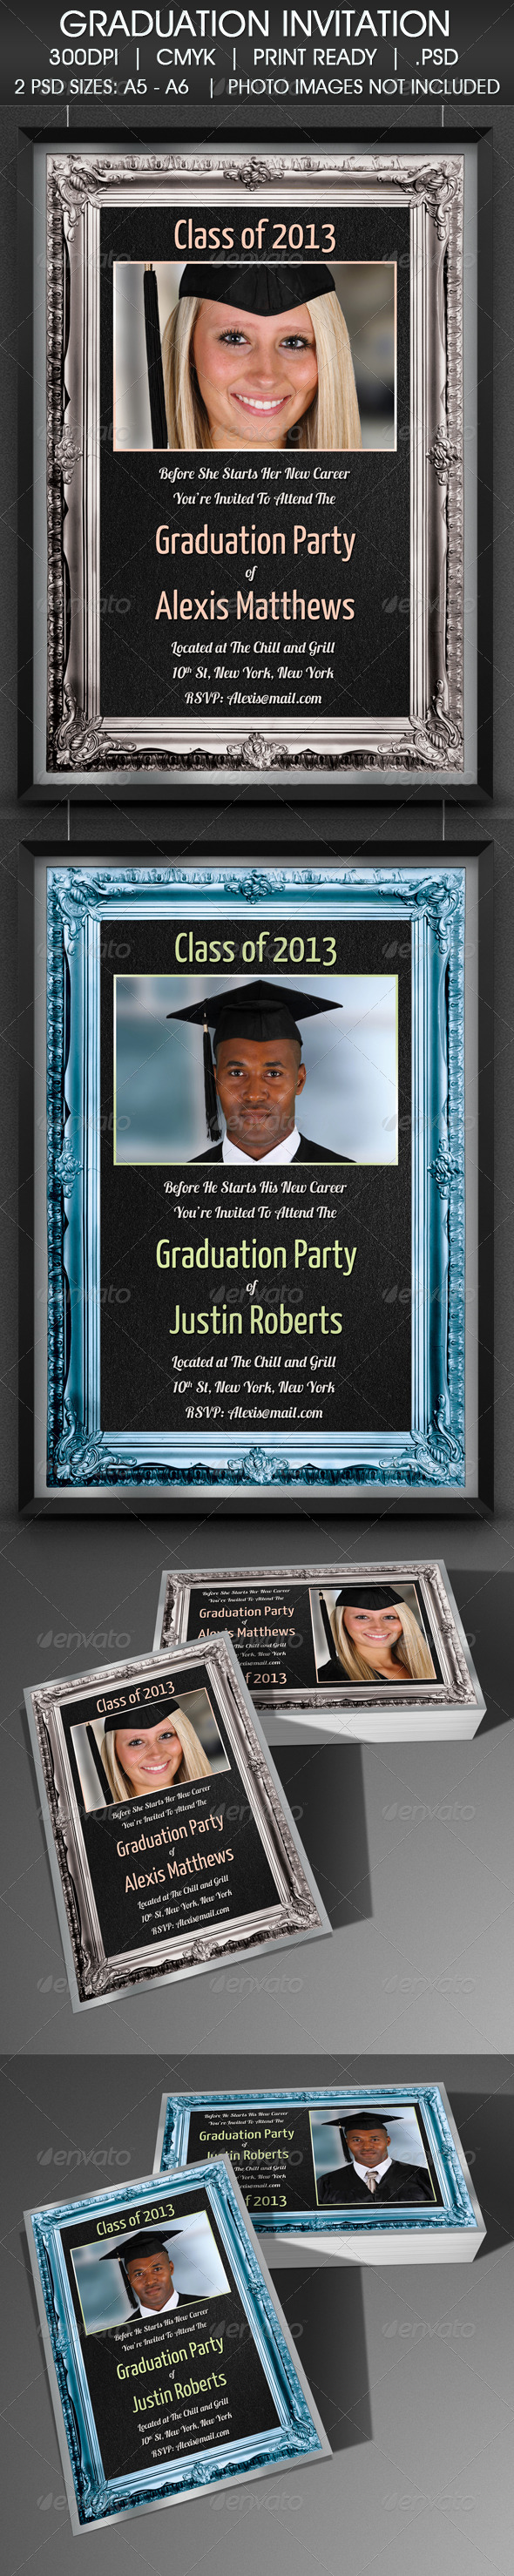 Graduation Party Degree Invitation - Invitations Cards & Invites